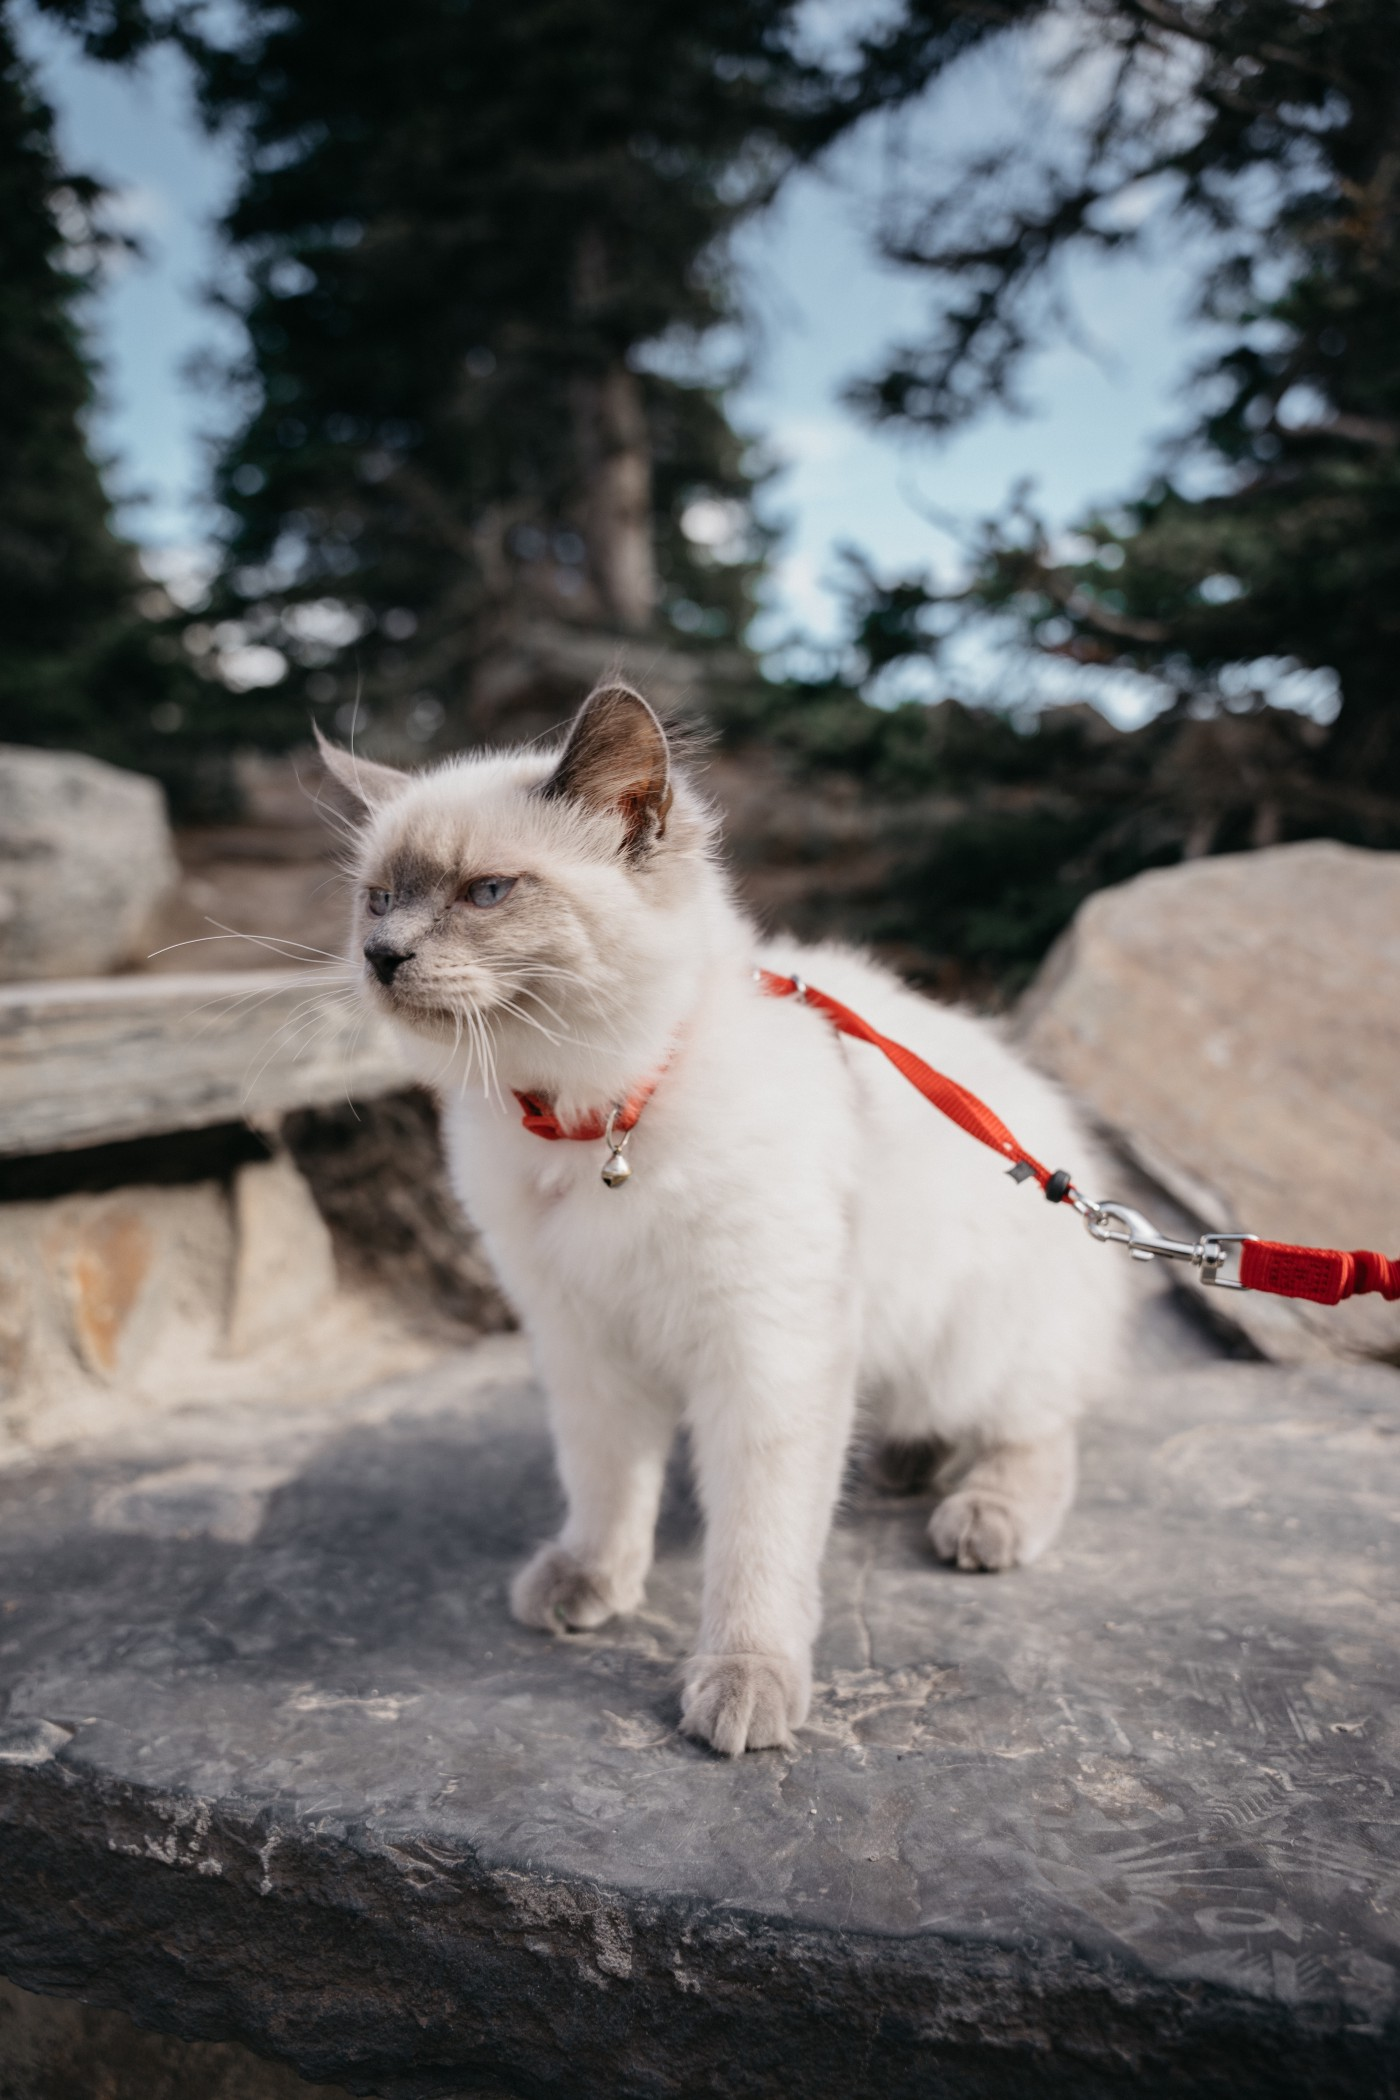 How To Leash Train A Cat?